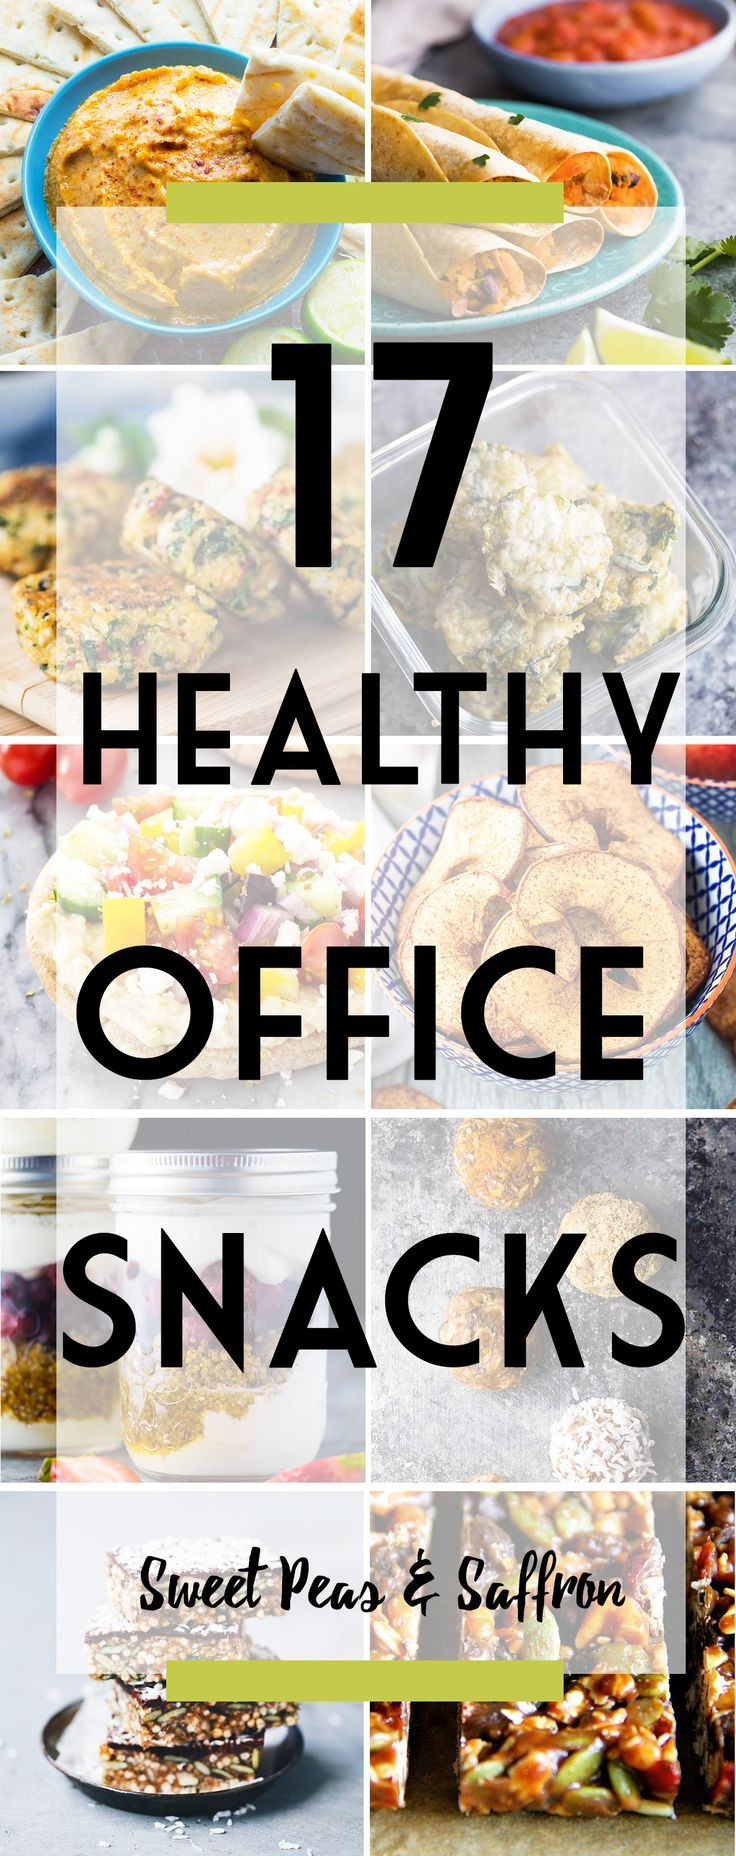 These healthy office snacks will keep you going in the afternoon while keeping things light. Tons of easy portable recipe ideas, and perfect for prepping on meal prep Sunday!: